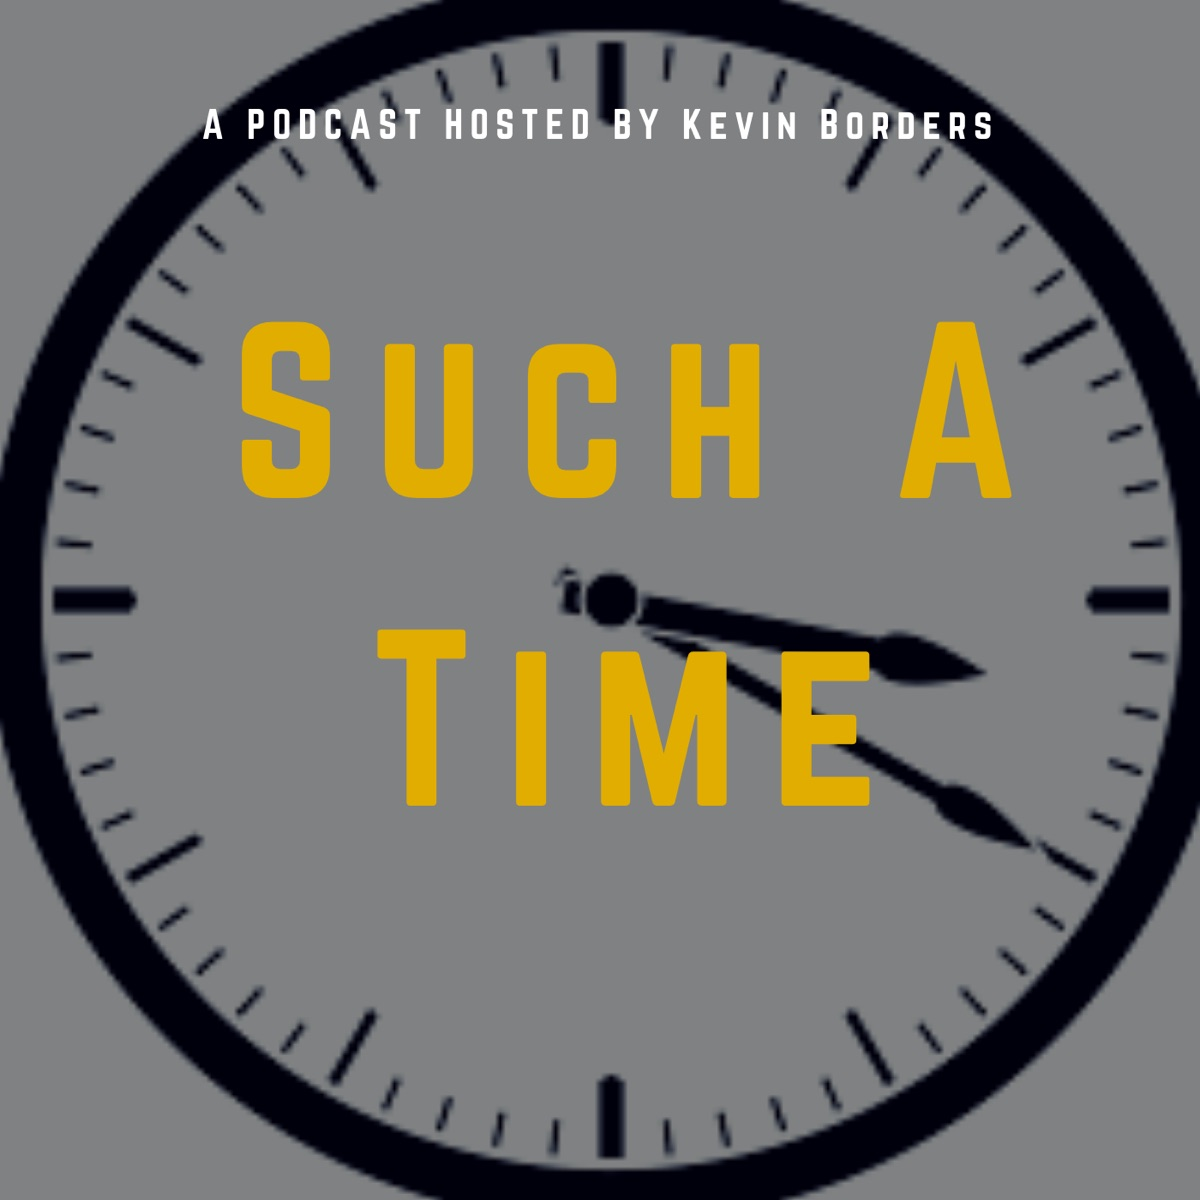 Such a time Podcast